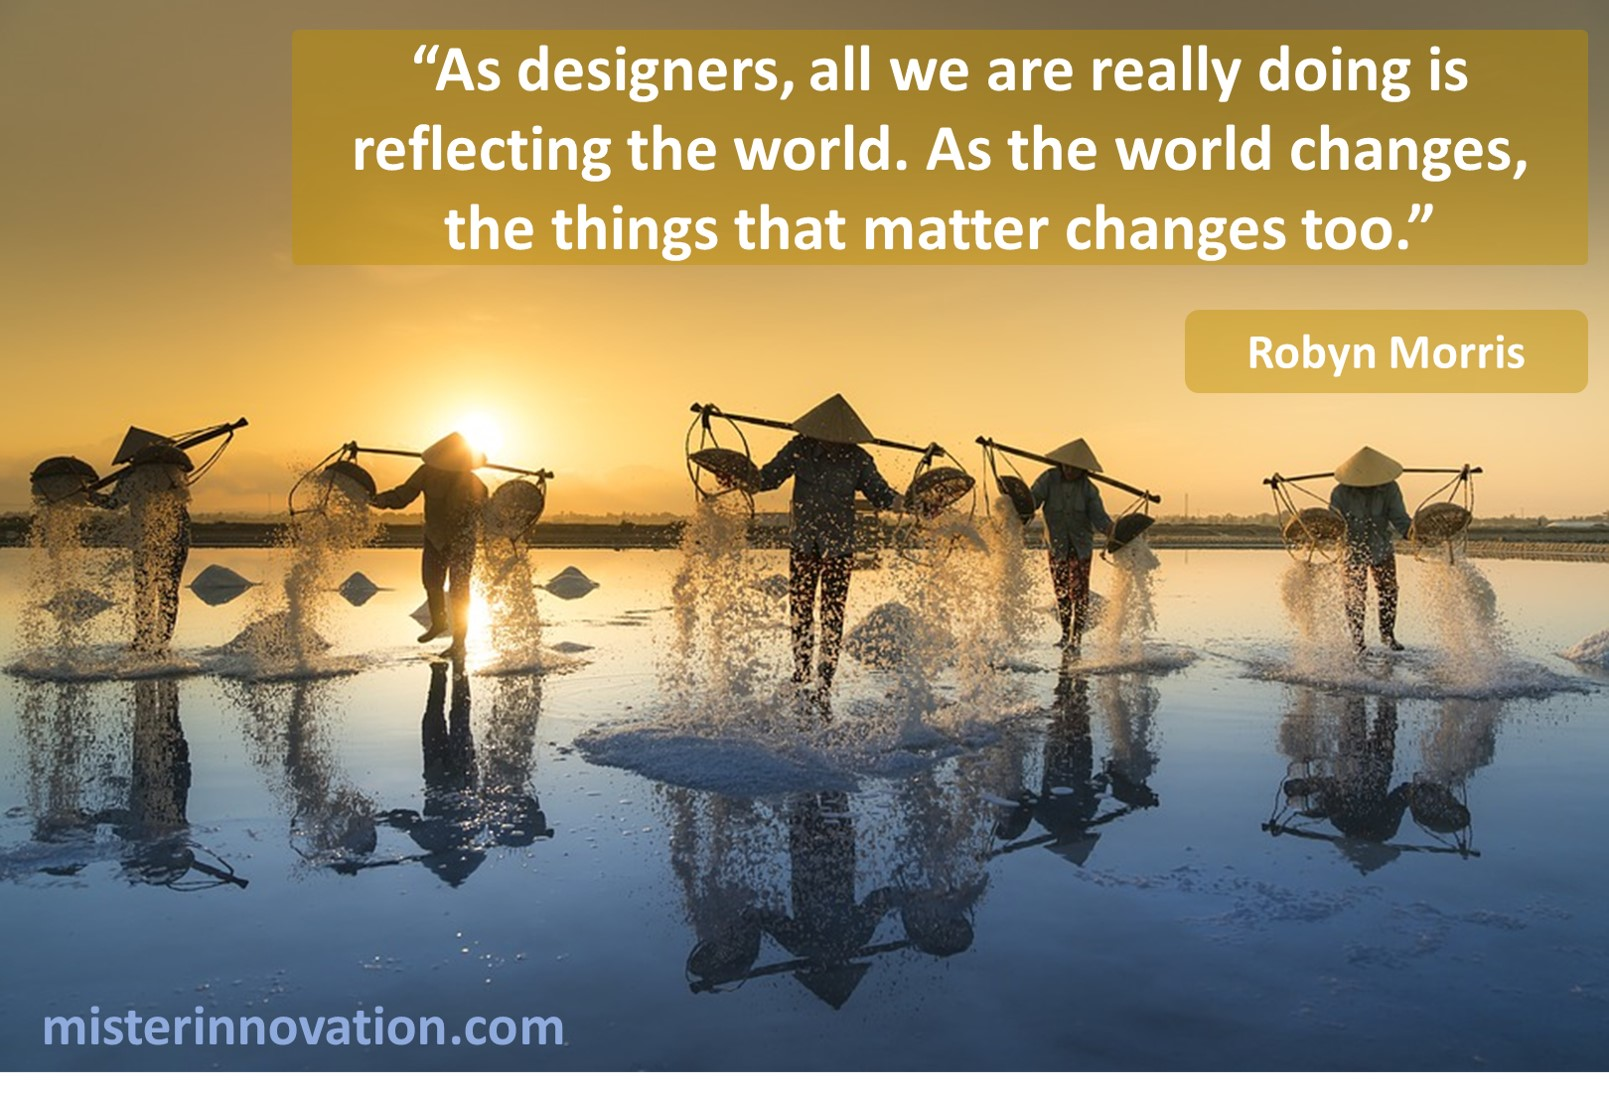 Robyn Morris Quote on Designers and Reflecting the World